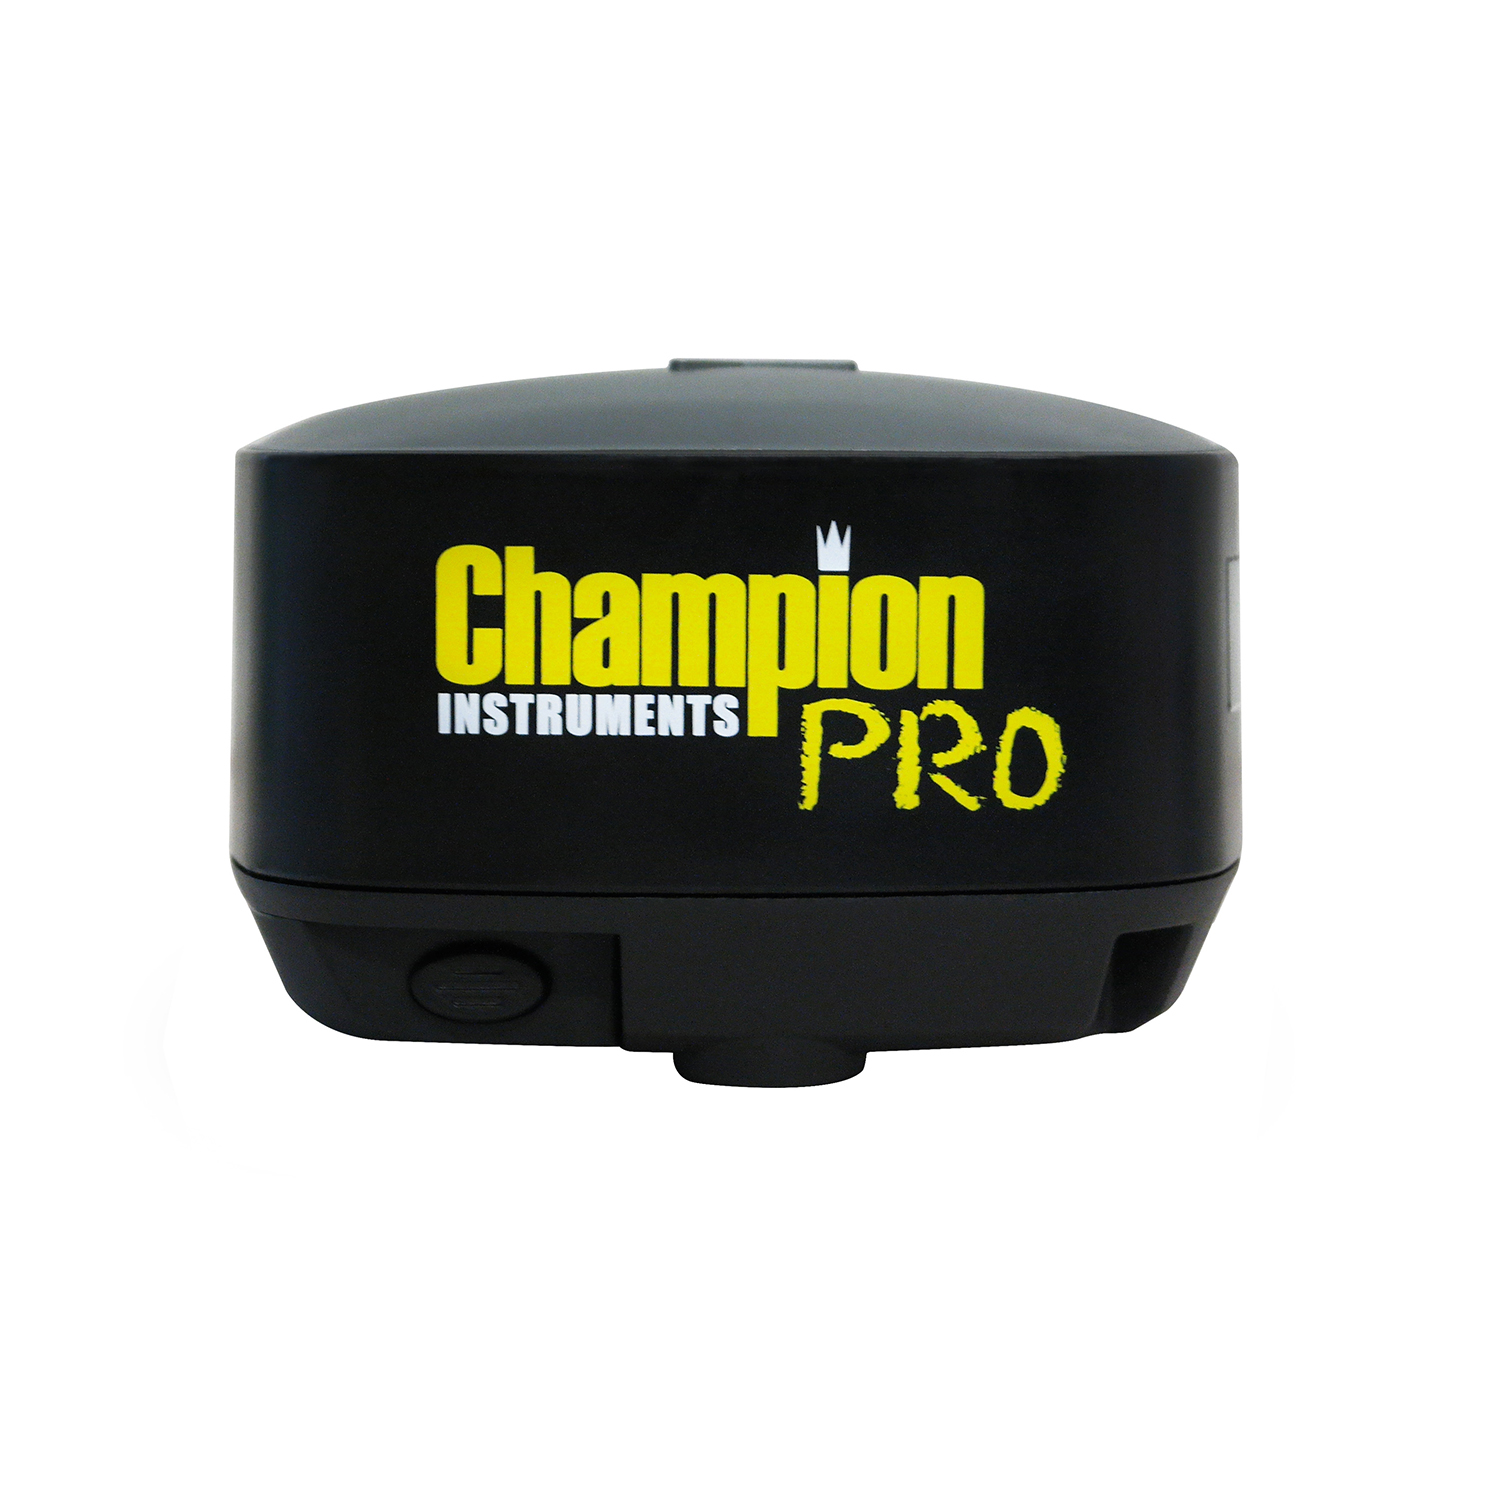 Champion-Instruments-PRO-GNSS-Receiver-Front.jpg